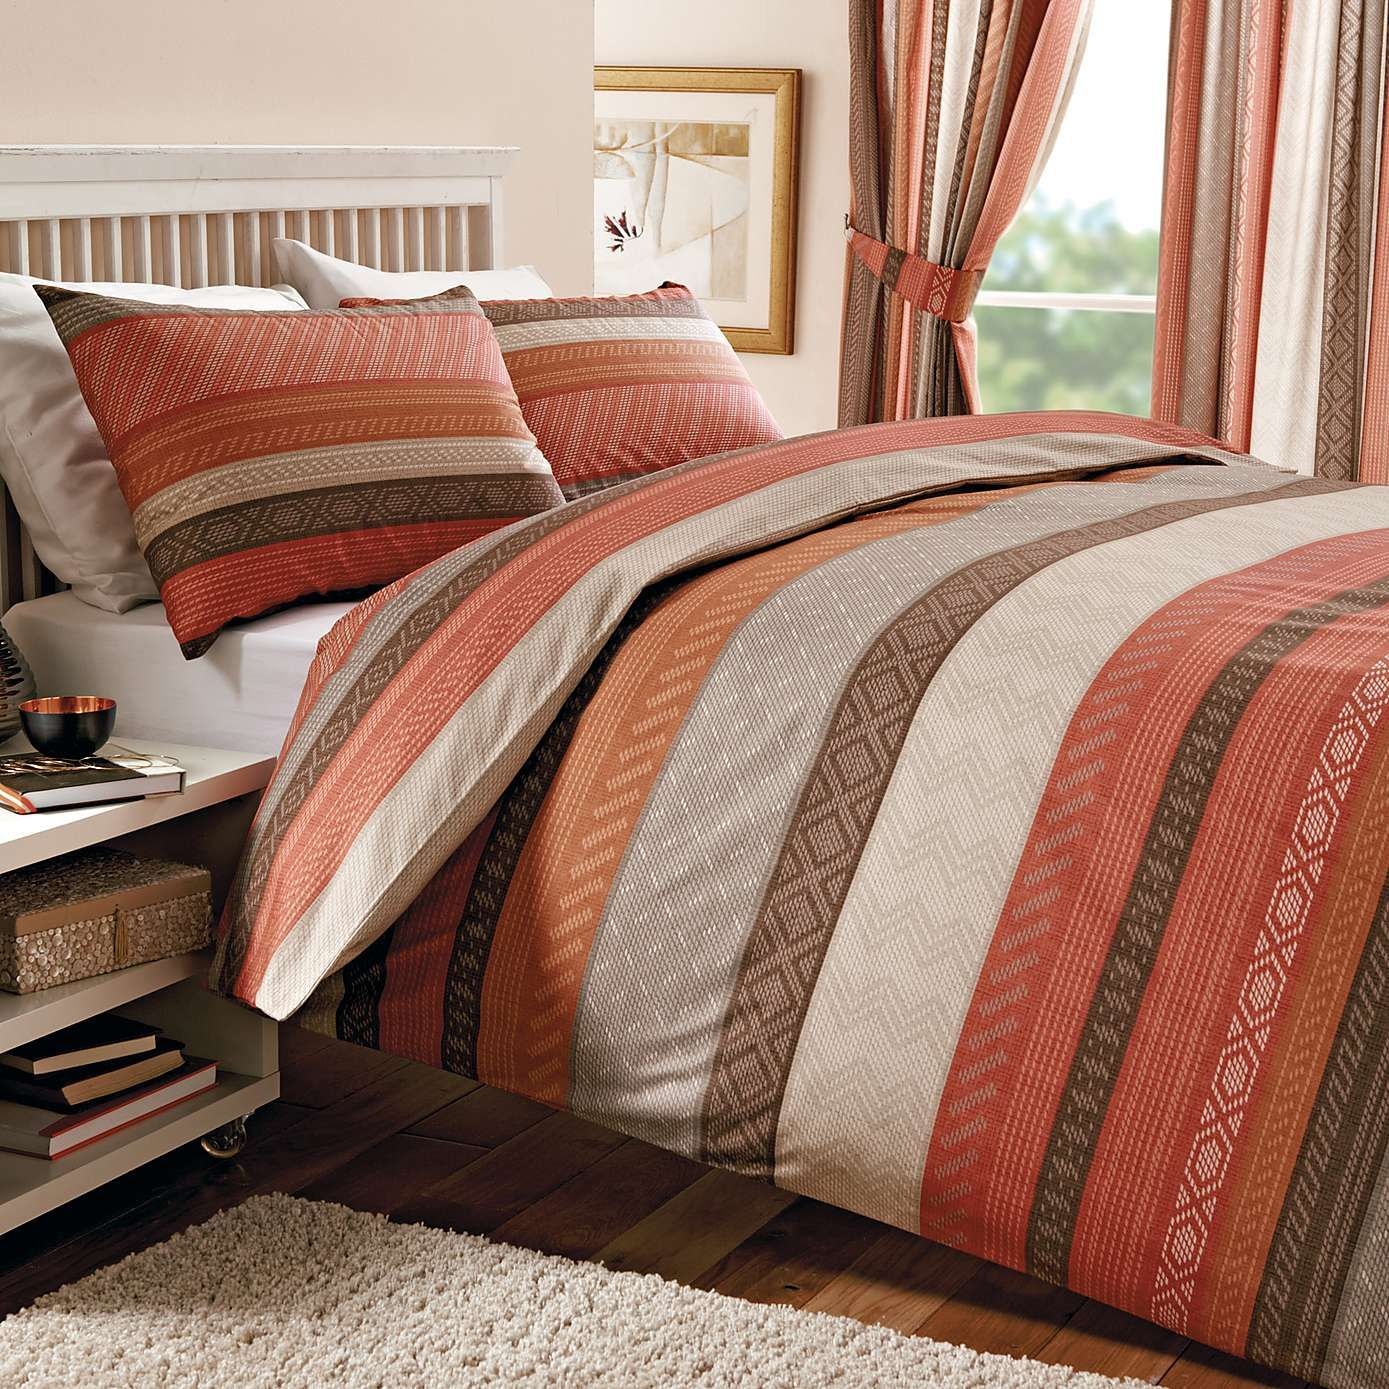 Terracotta Mizar Duvet Cover Set Dunelm in 2020 Duvet